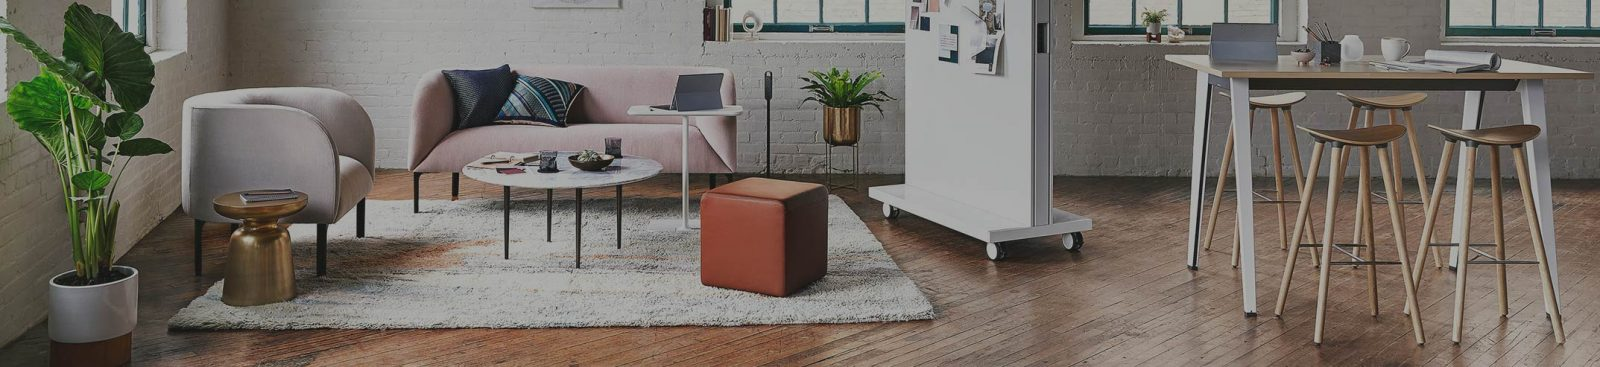 Need advice on how to transition into an open plan office? image